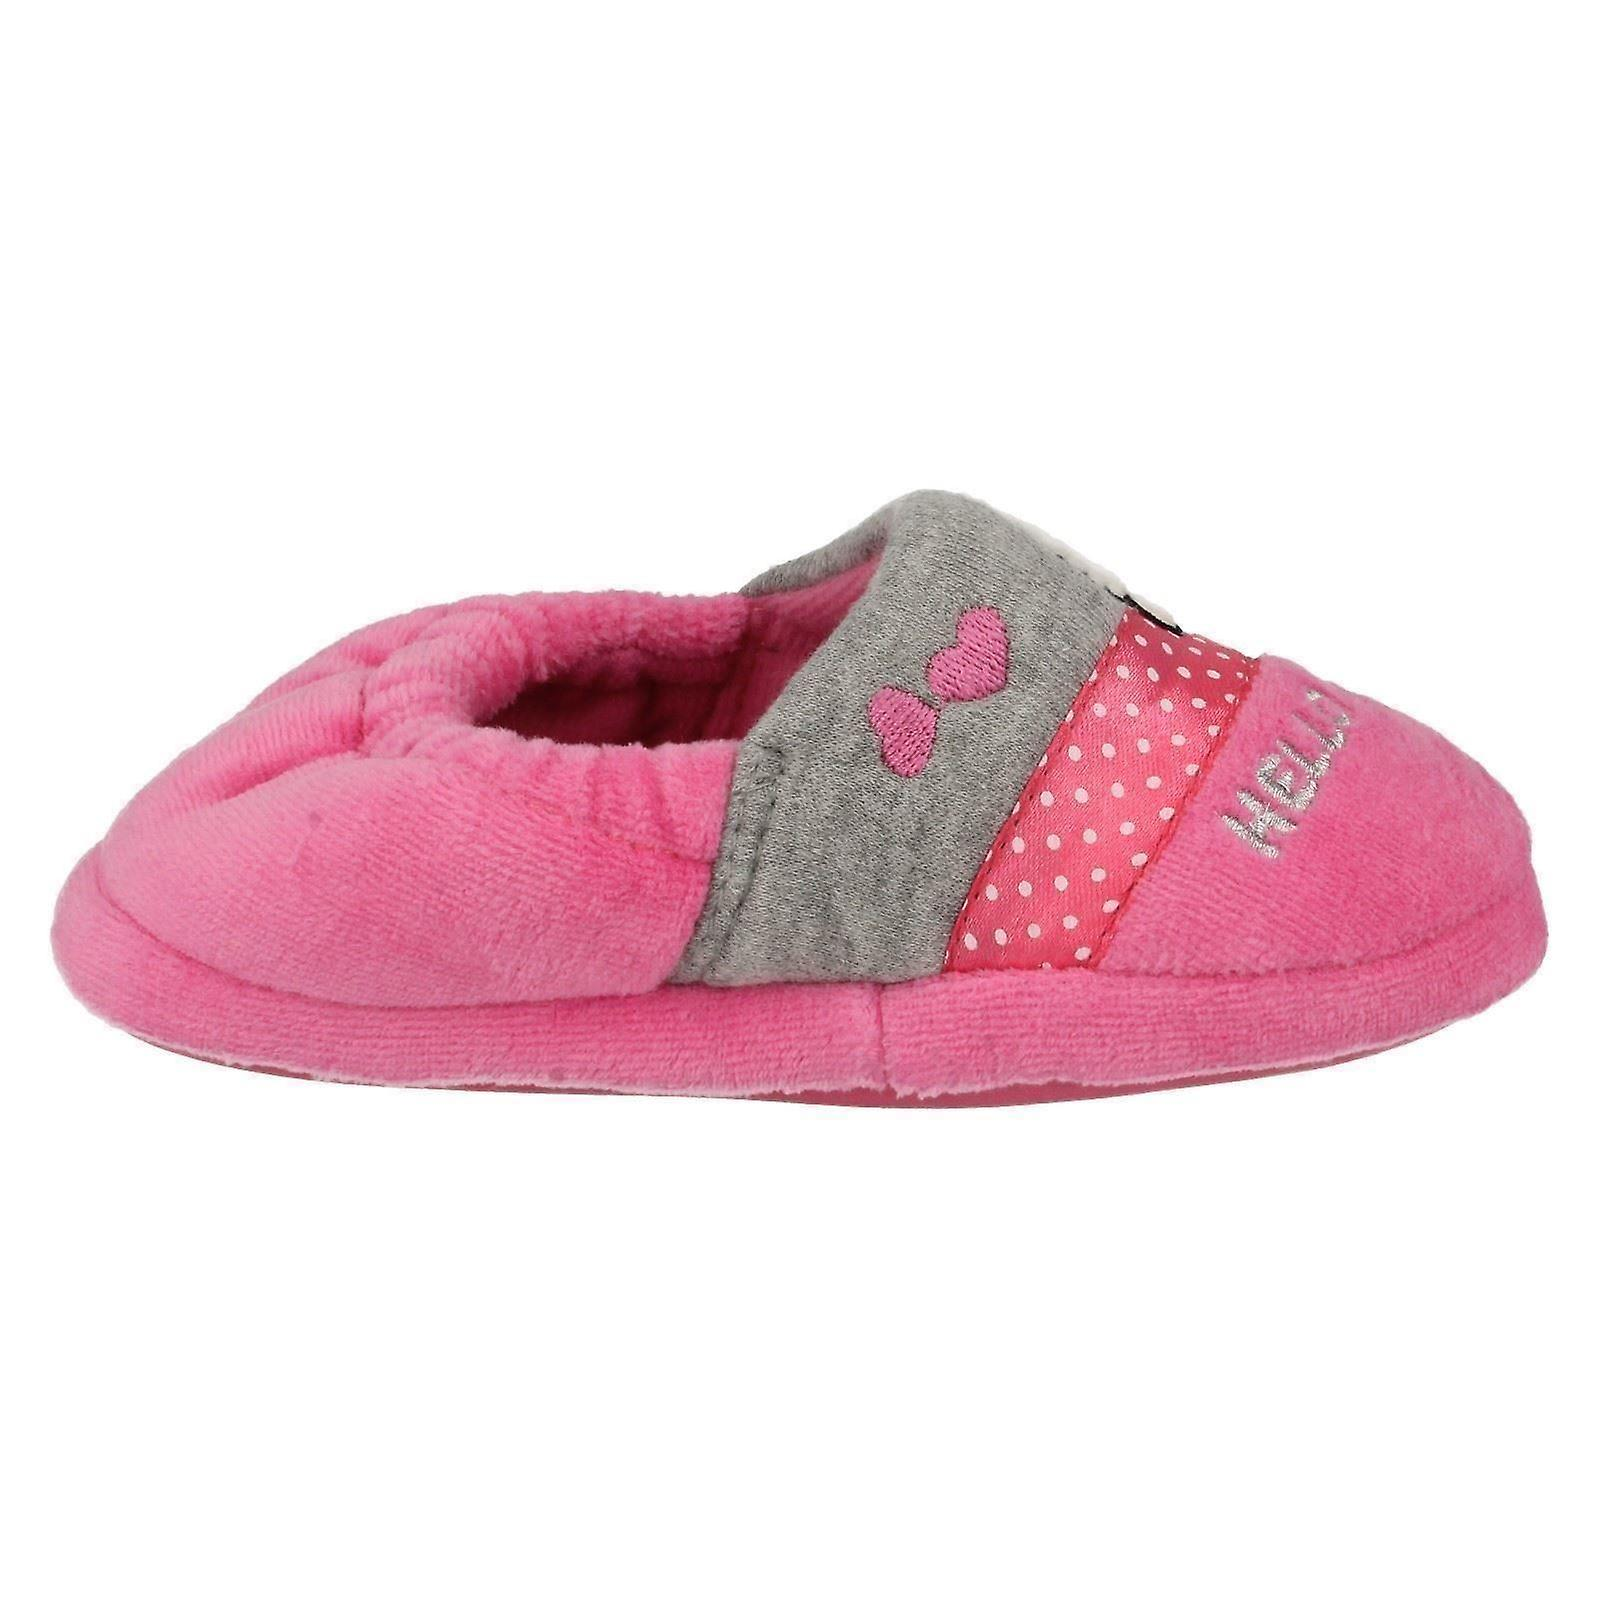 11fe5dc28 Girls Hello Kitty Full Slippers Persian | Fruugo